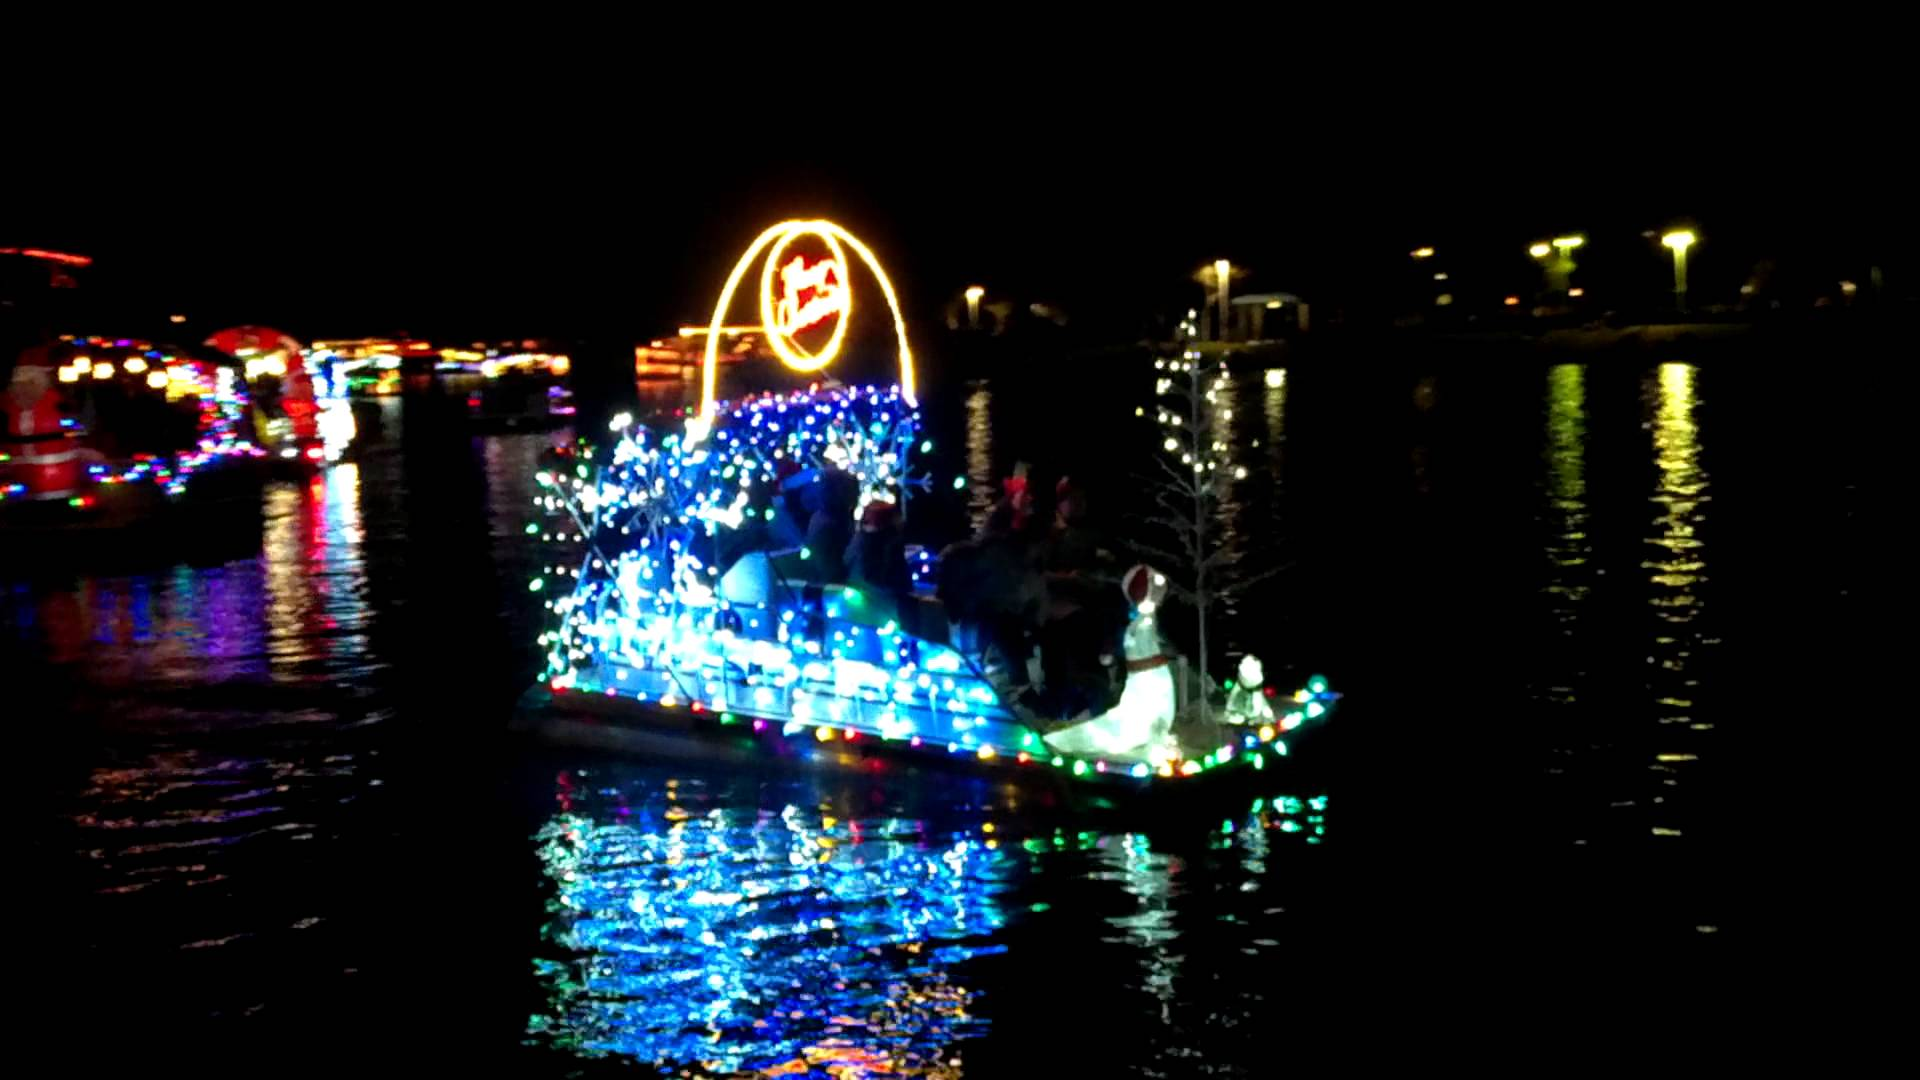 Christmas Lighted Boat Parade at The Islands in Gilbert AZ December 10 and 17, 2016